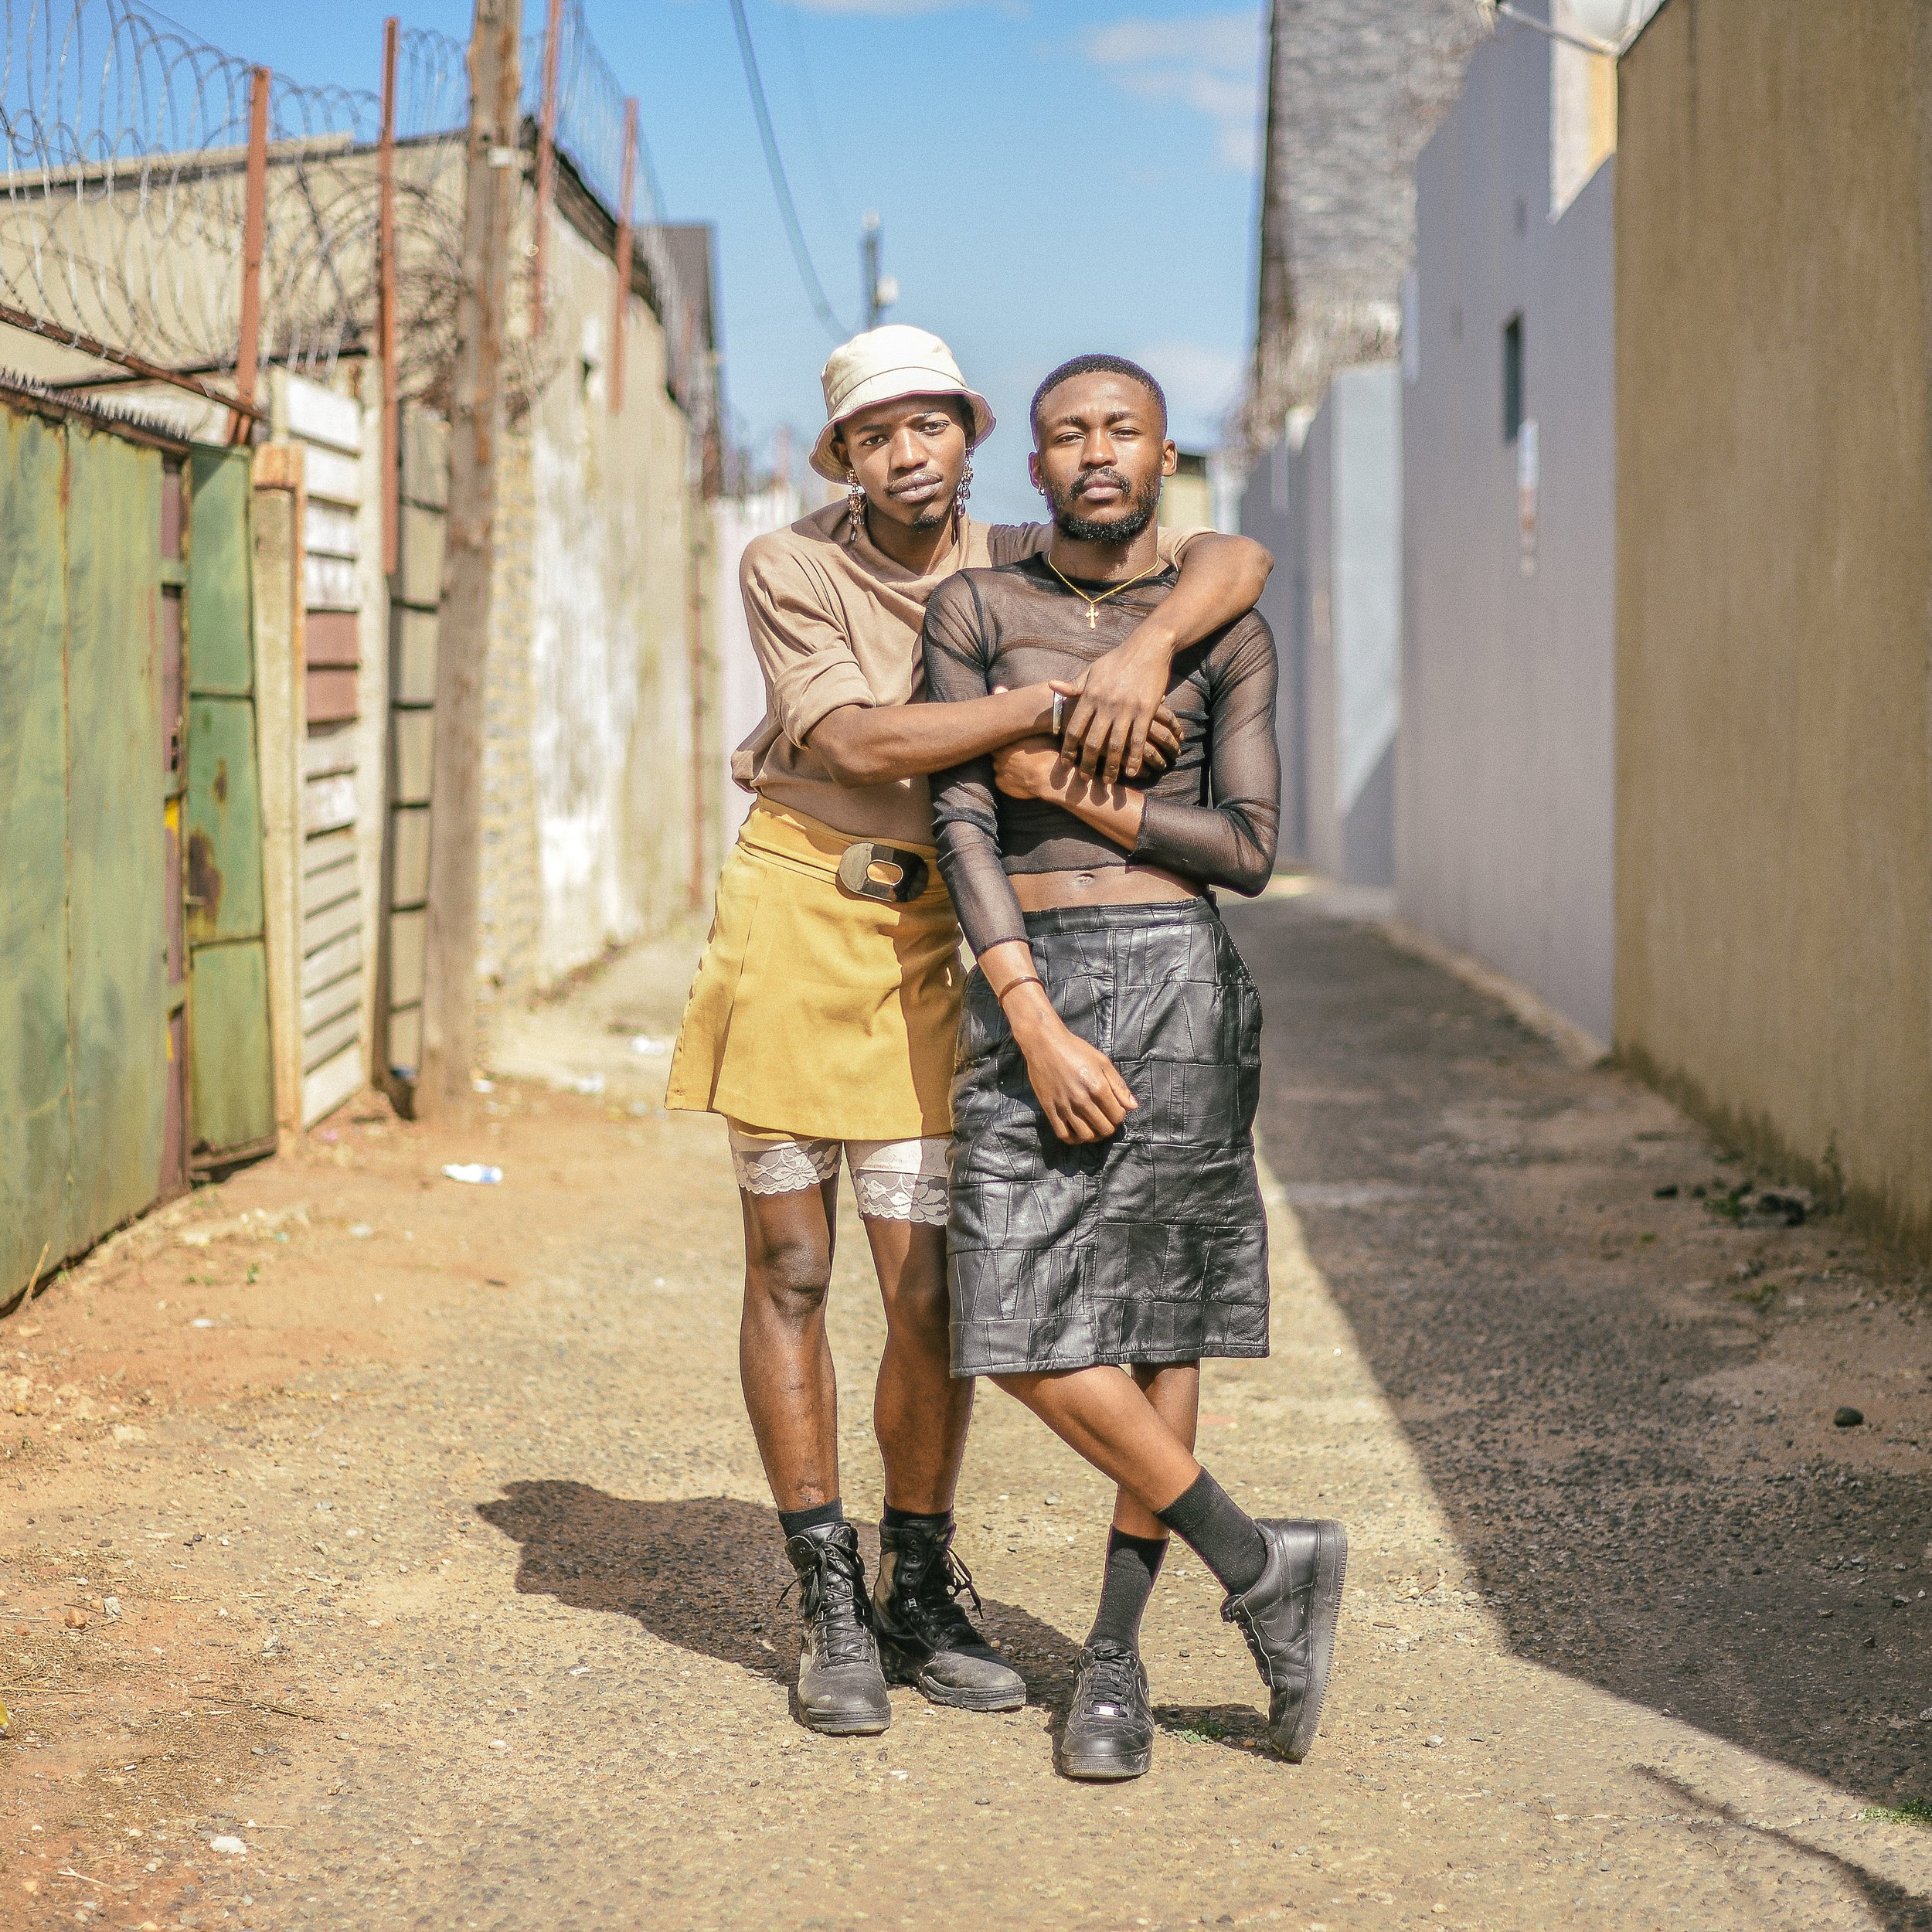 faka won't be ignored - The musical duo is redefining what it means to be black and queer in South Africa.